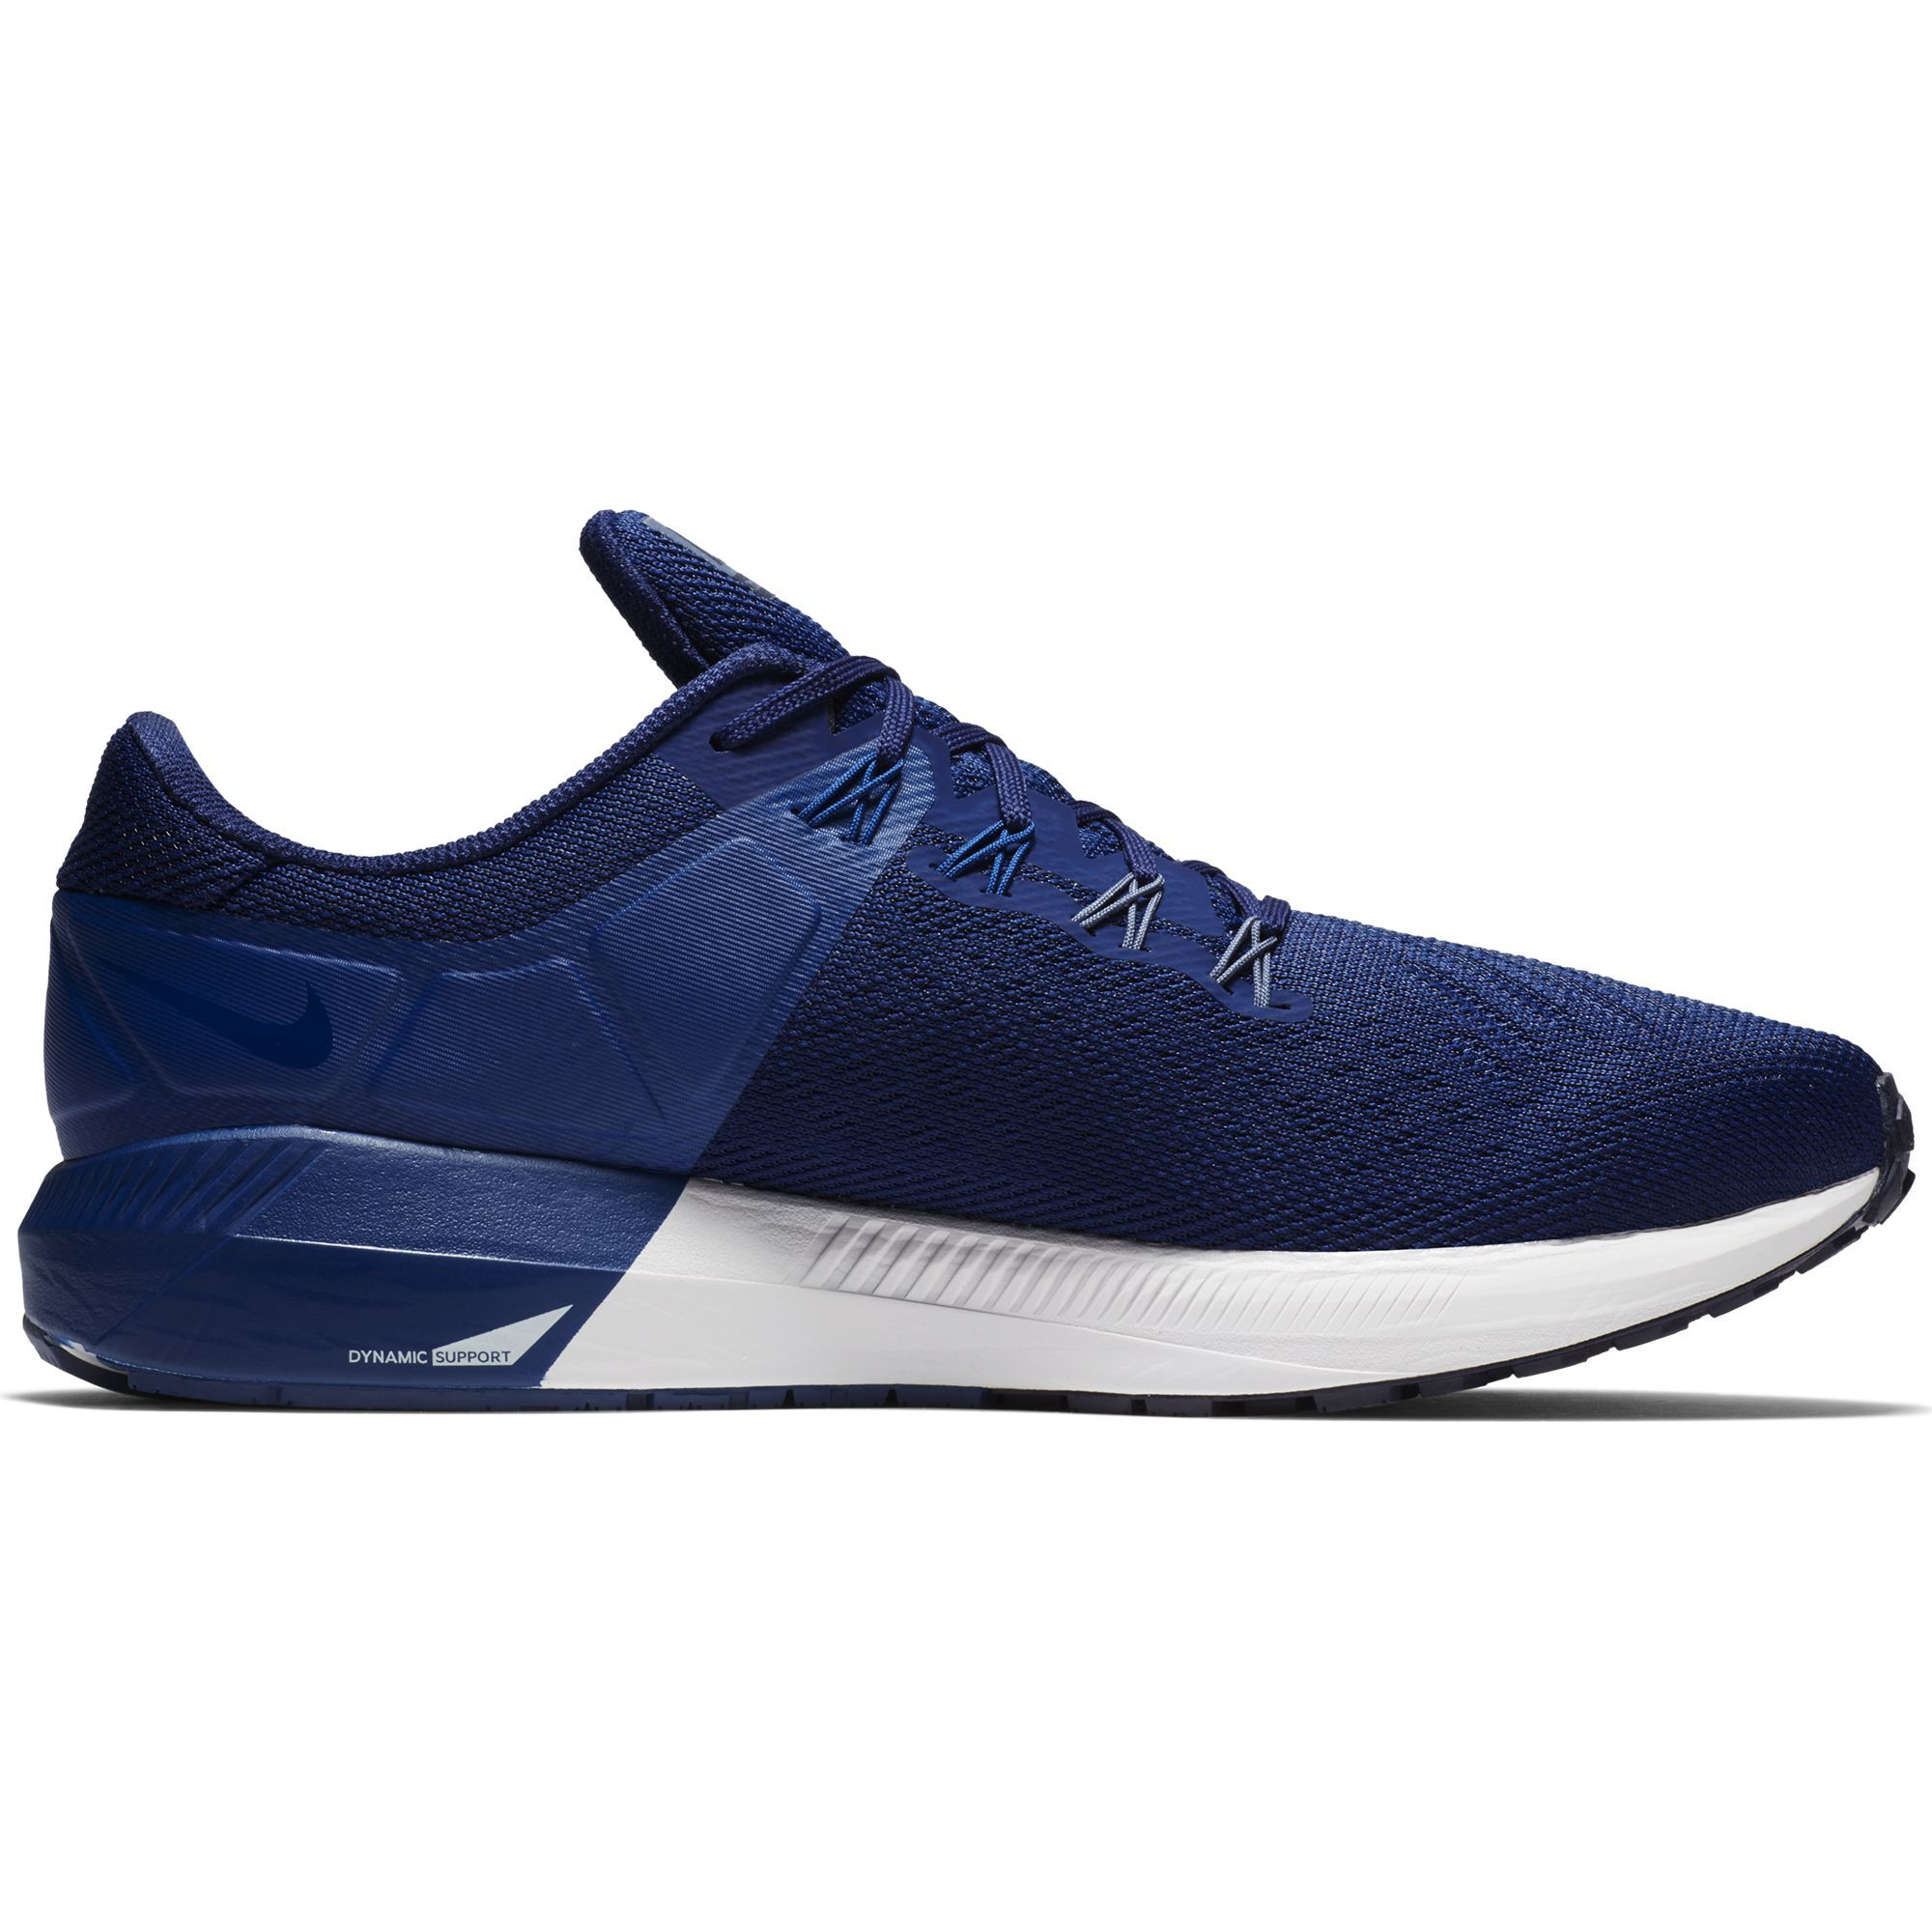 Nike Air Zoom Structure 22 in Blau